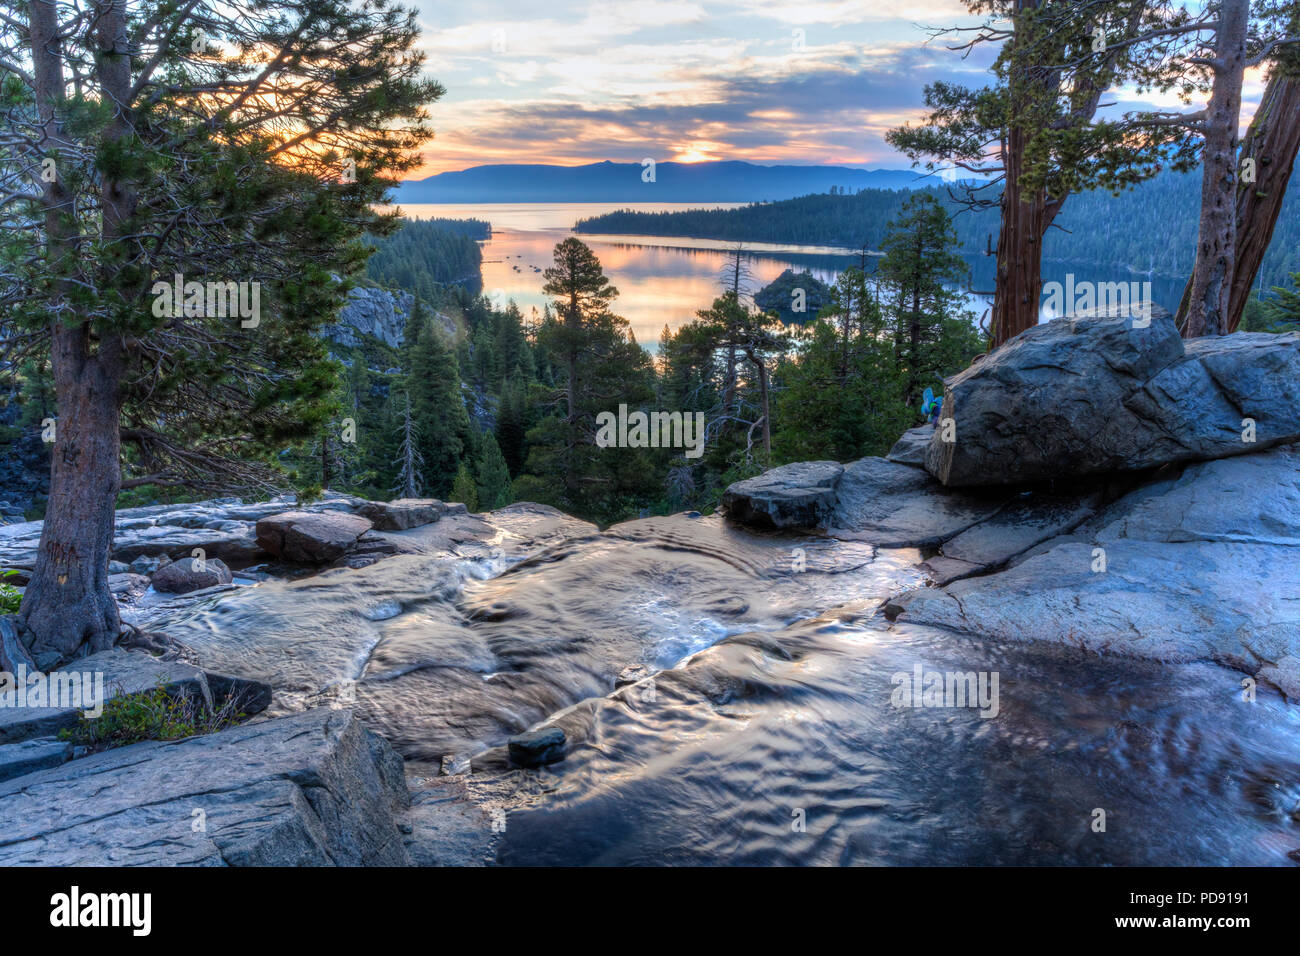 Colorful sunrise on Emerald Bay from the top of Eagle Falls off Lake Tahoe in California. Stock Photo